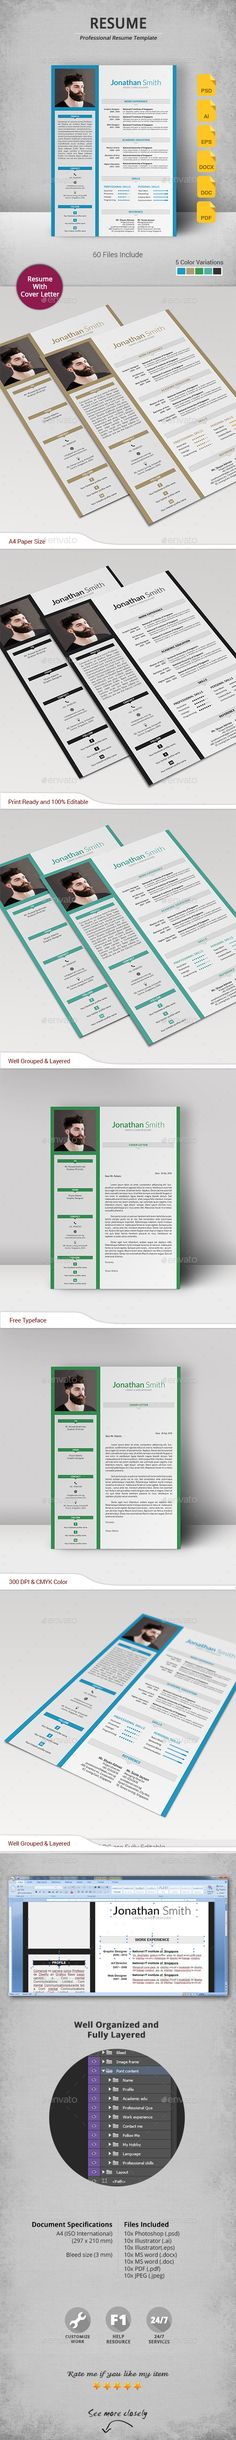 #Resume - Resumes #Stationery Download here: https://graphicriver.net/item/resume/16831505?ref=alena994